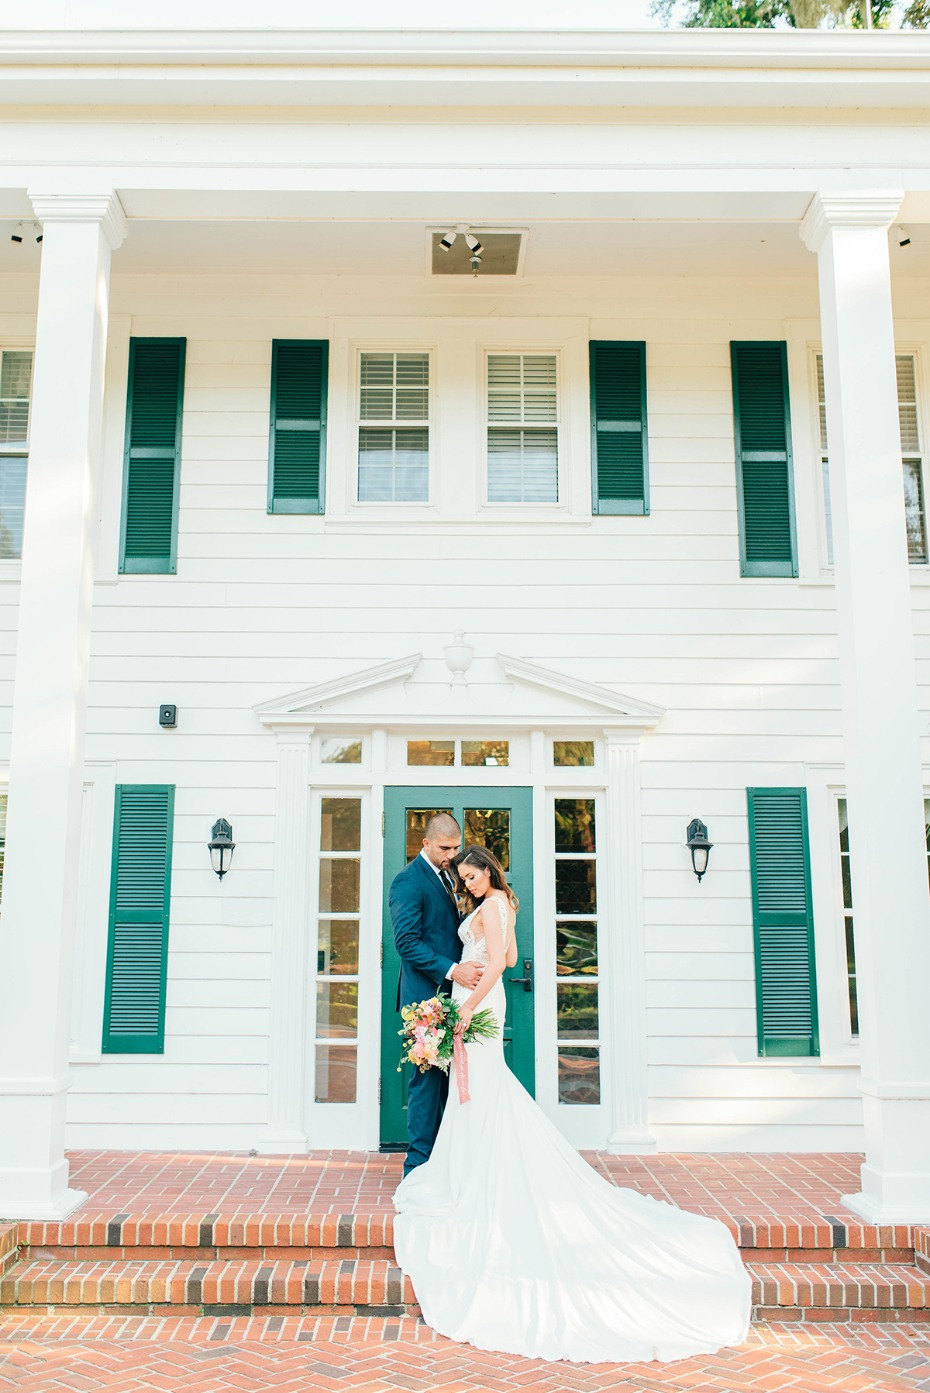 Cypress Groves wedding venue